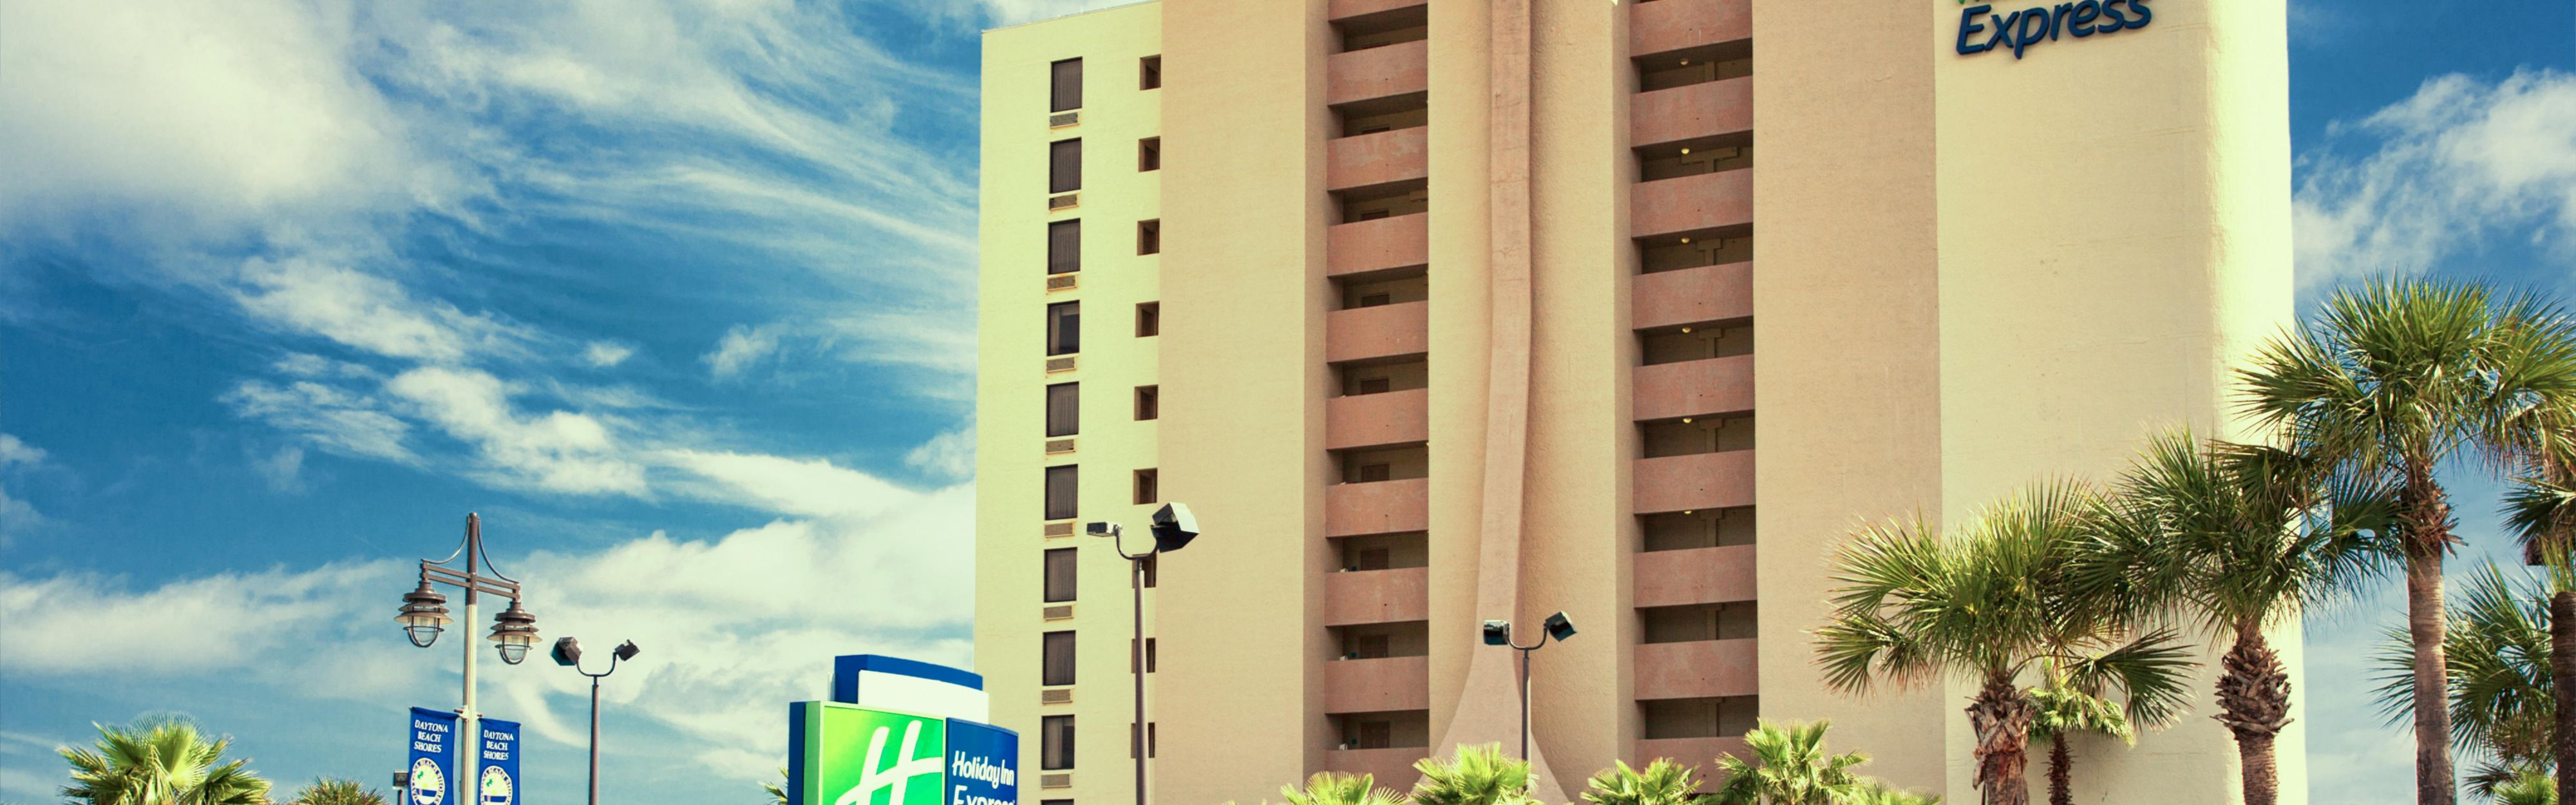 Holiday Inn Express & Suites Oceanfront Daytona Bch Shores image 0